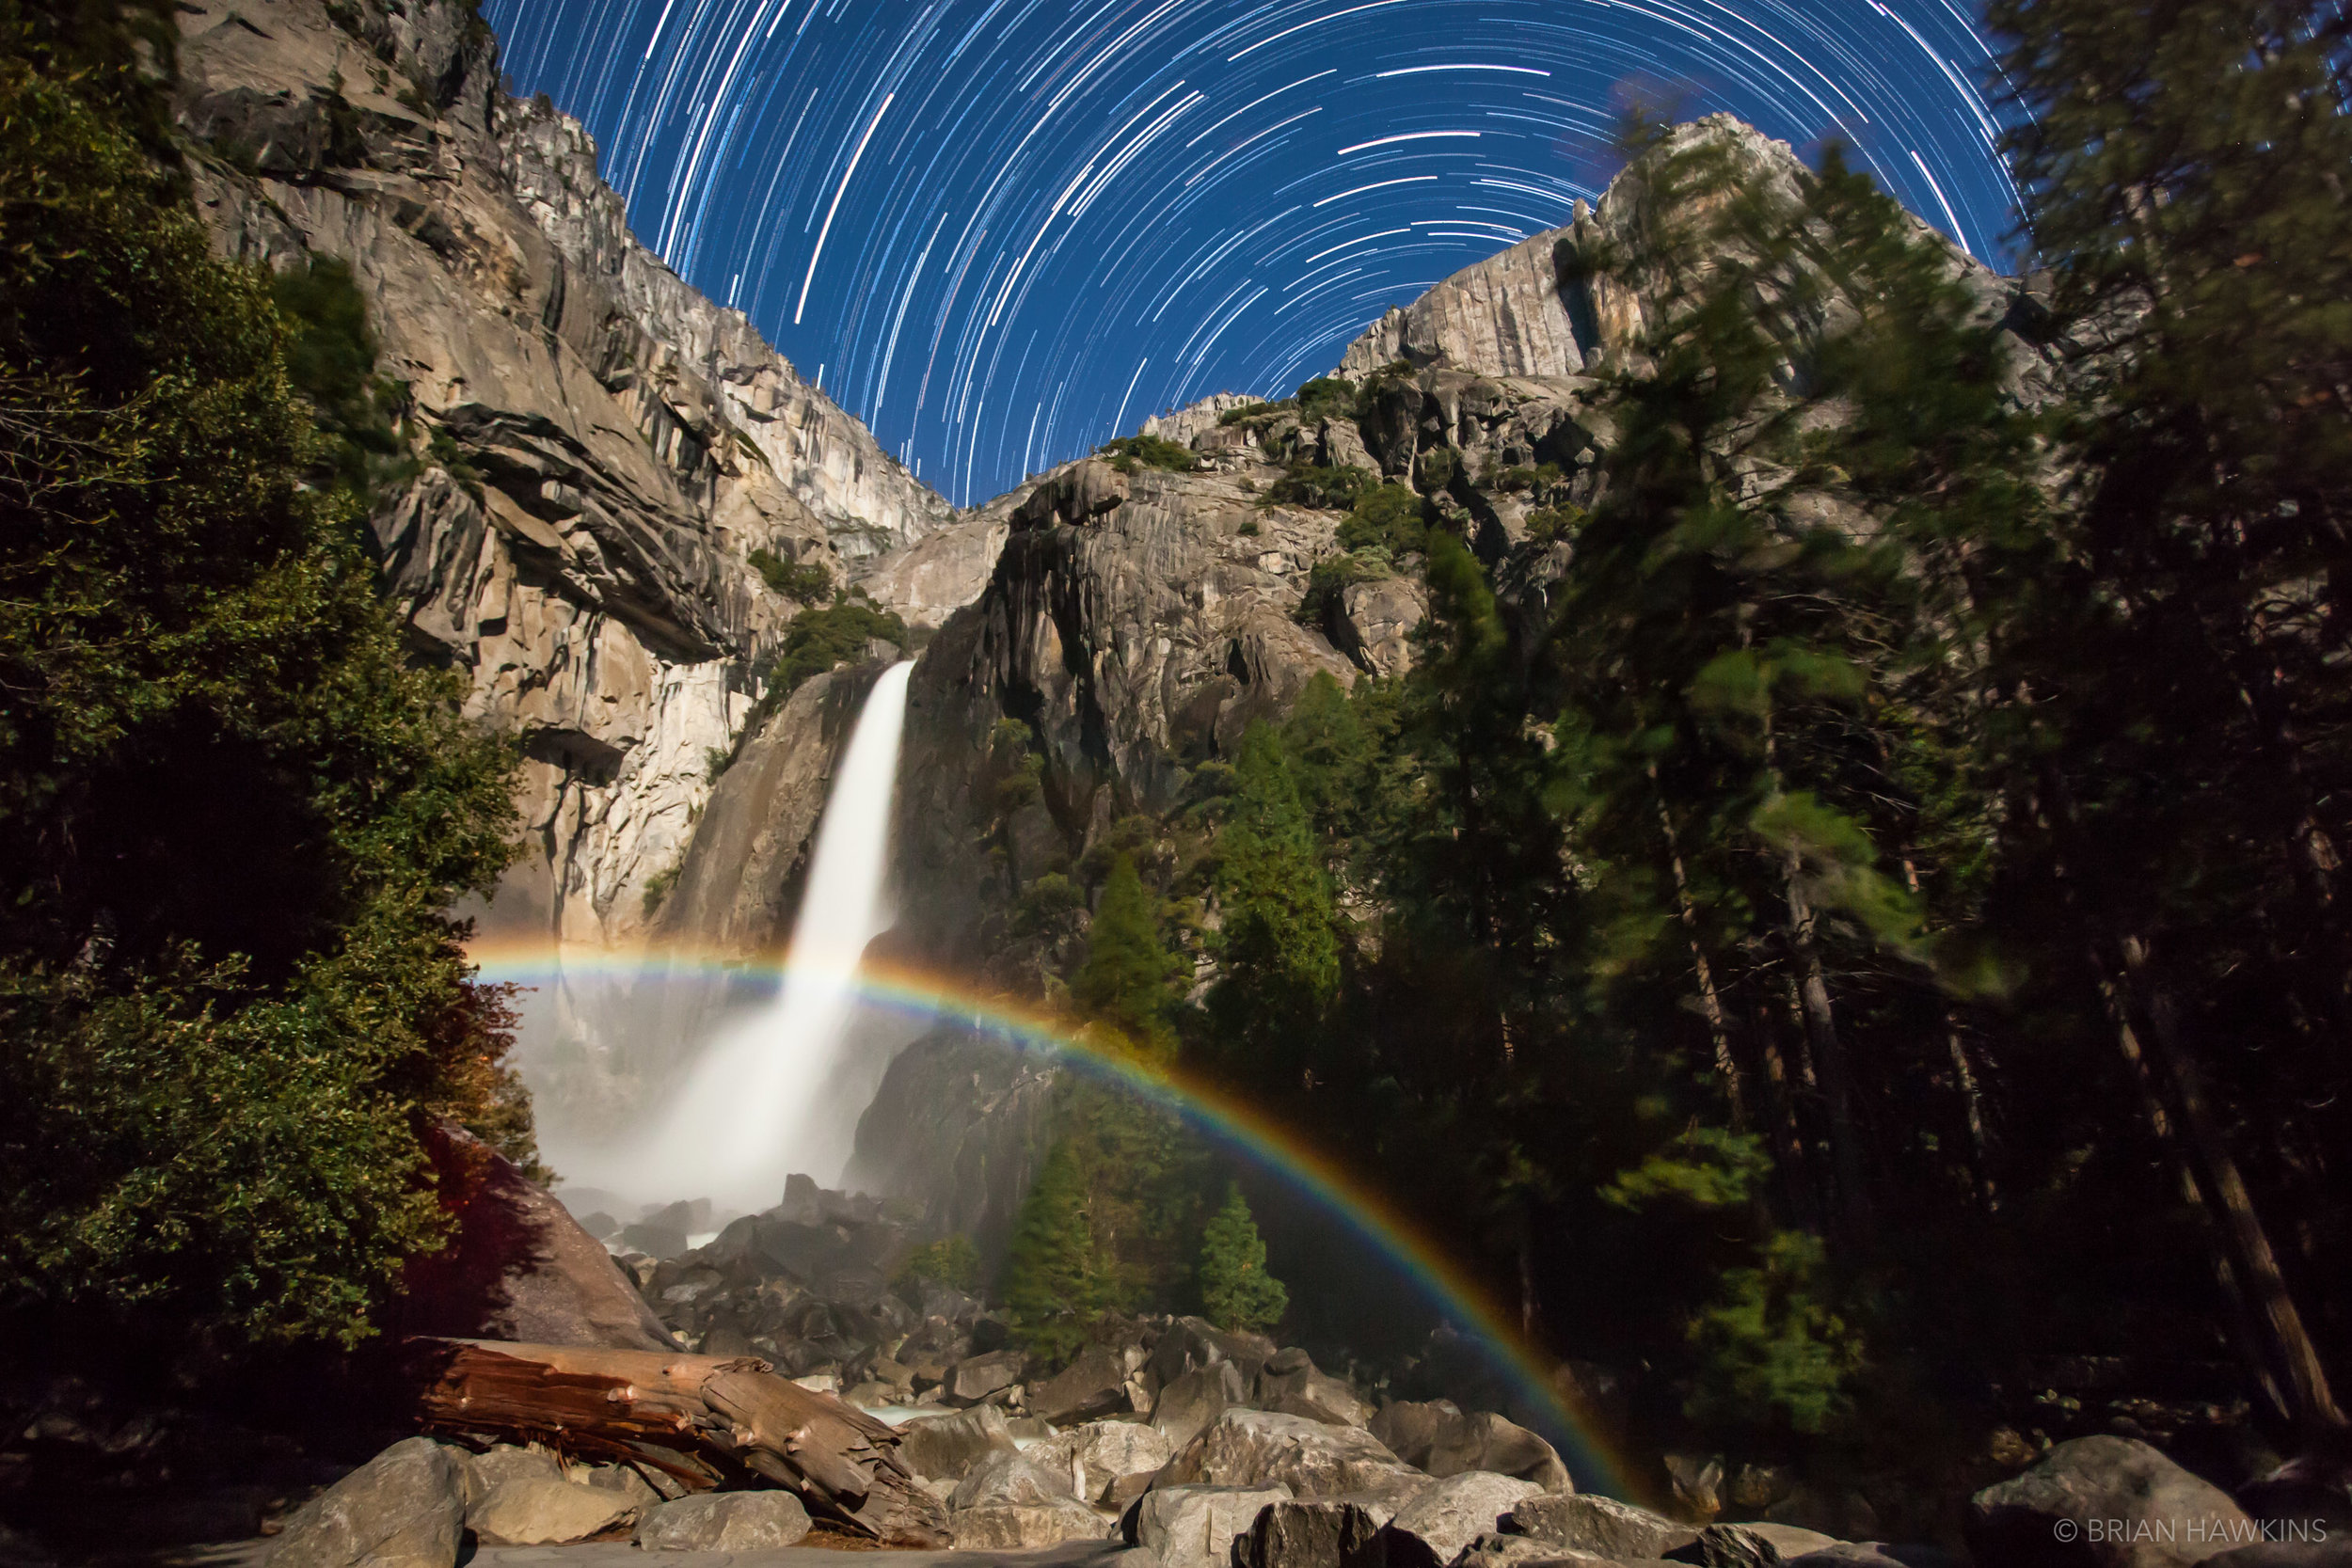 Moonbow in Lower Yosemite Fall by Brian Hawkins120506-67838t.jpg